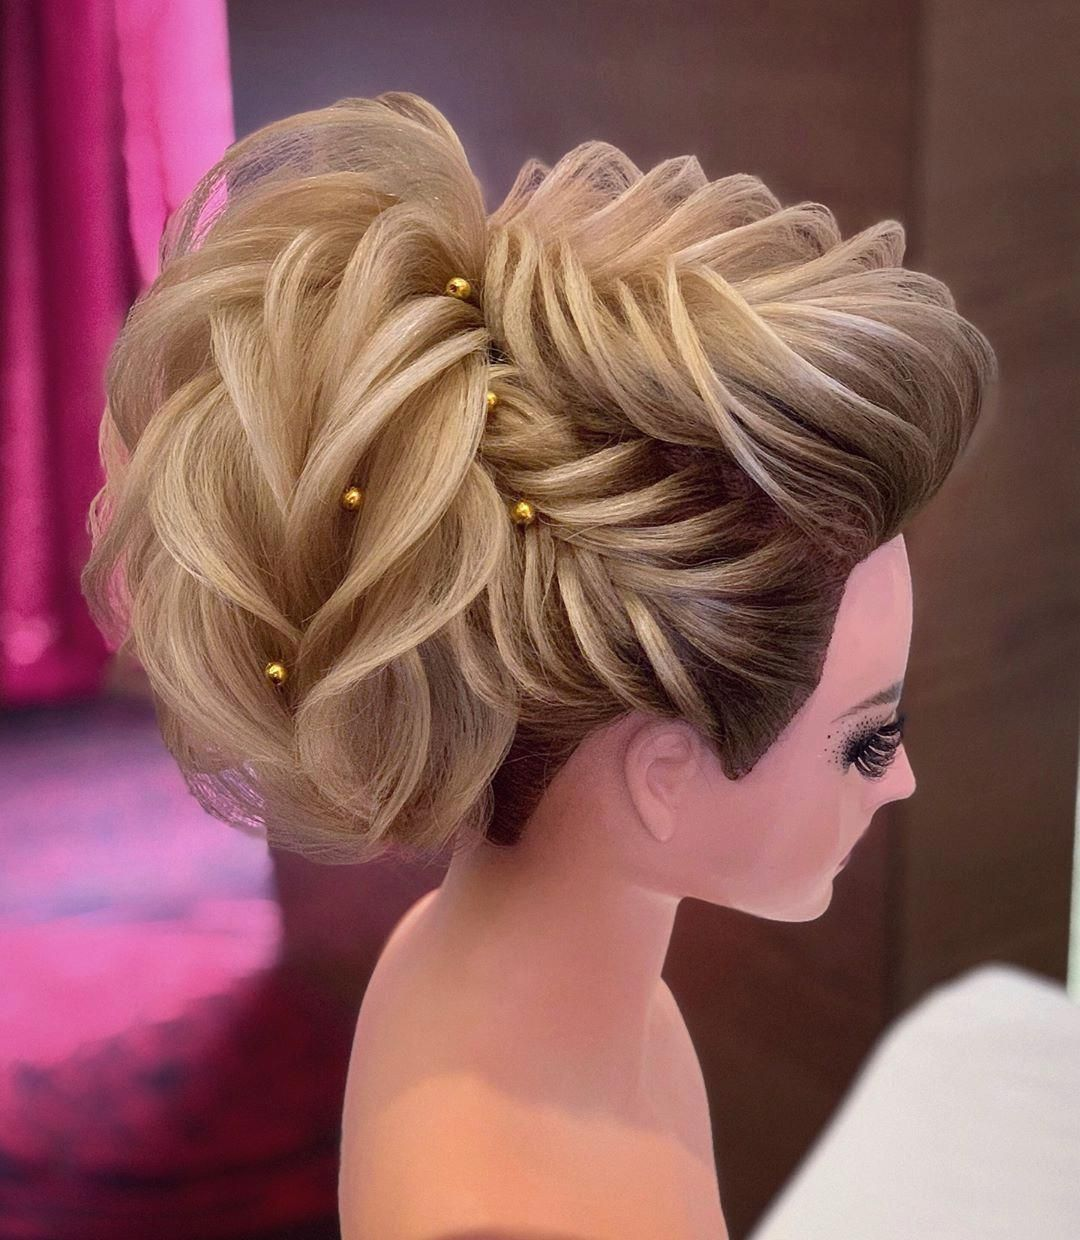 Wedding Hairstyle For Square Face: Updo Hairstyles Videos For Quinceanera #shorthairupdo